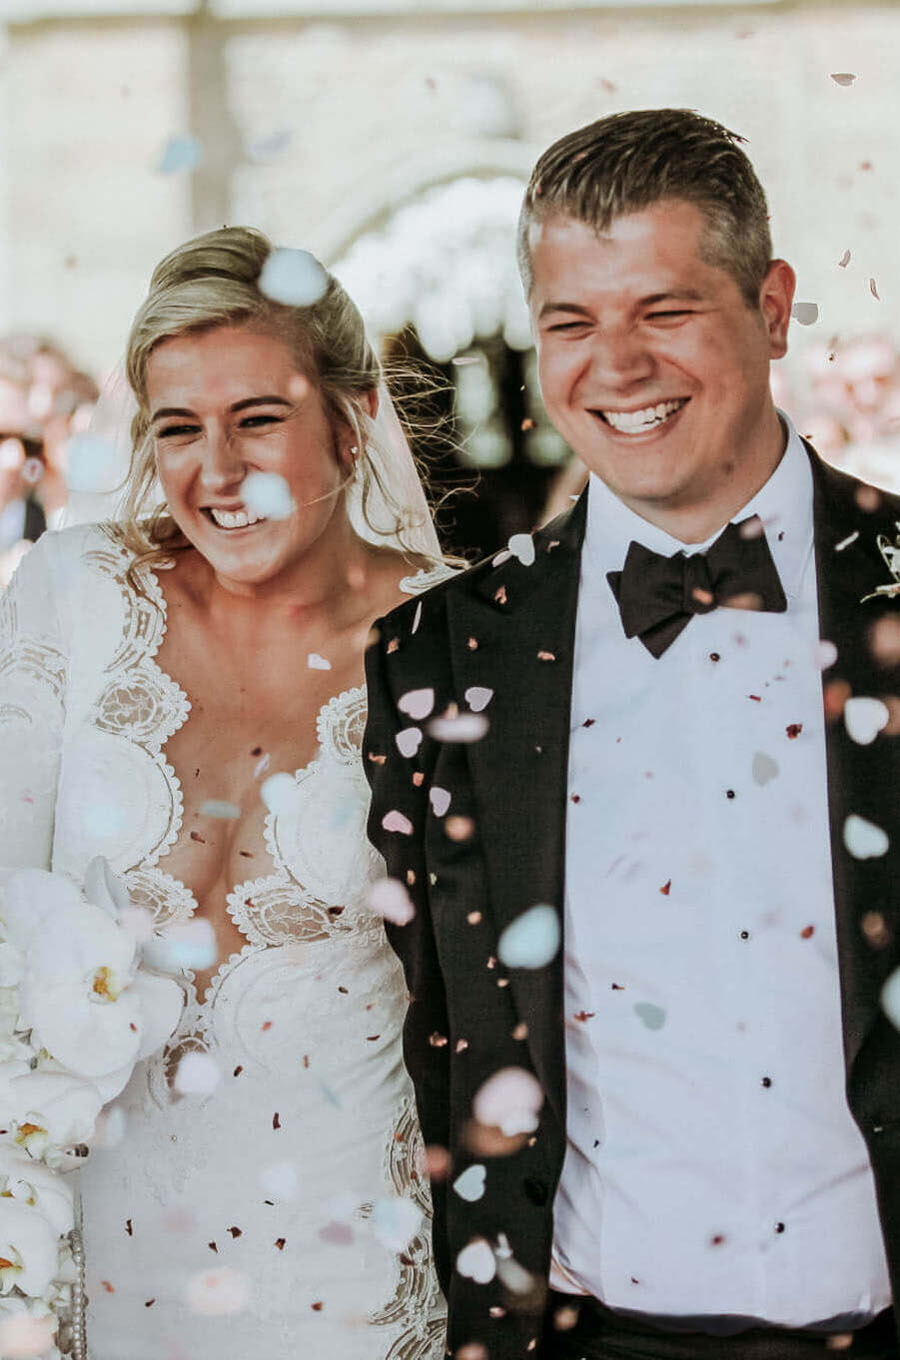 Wedding photographer Liverpool Wes Simpson. Happy bride and groom leaving church under confetti